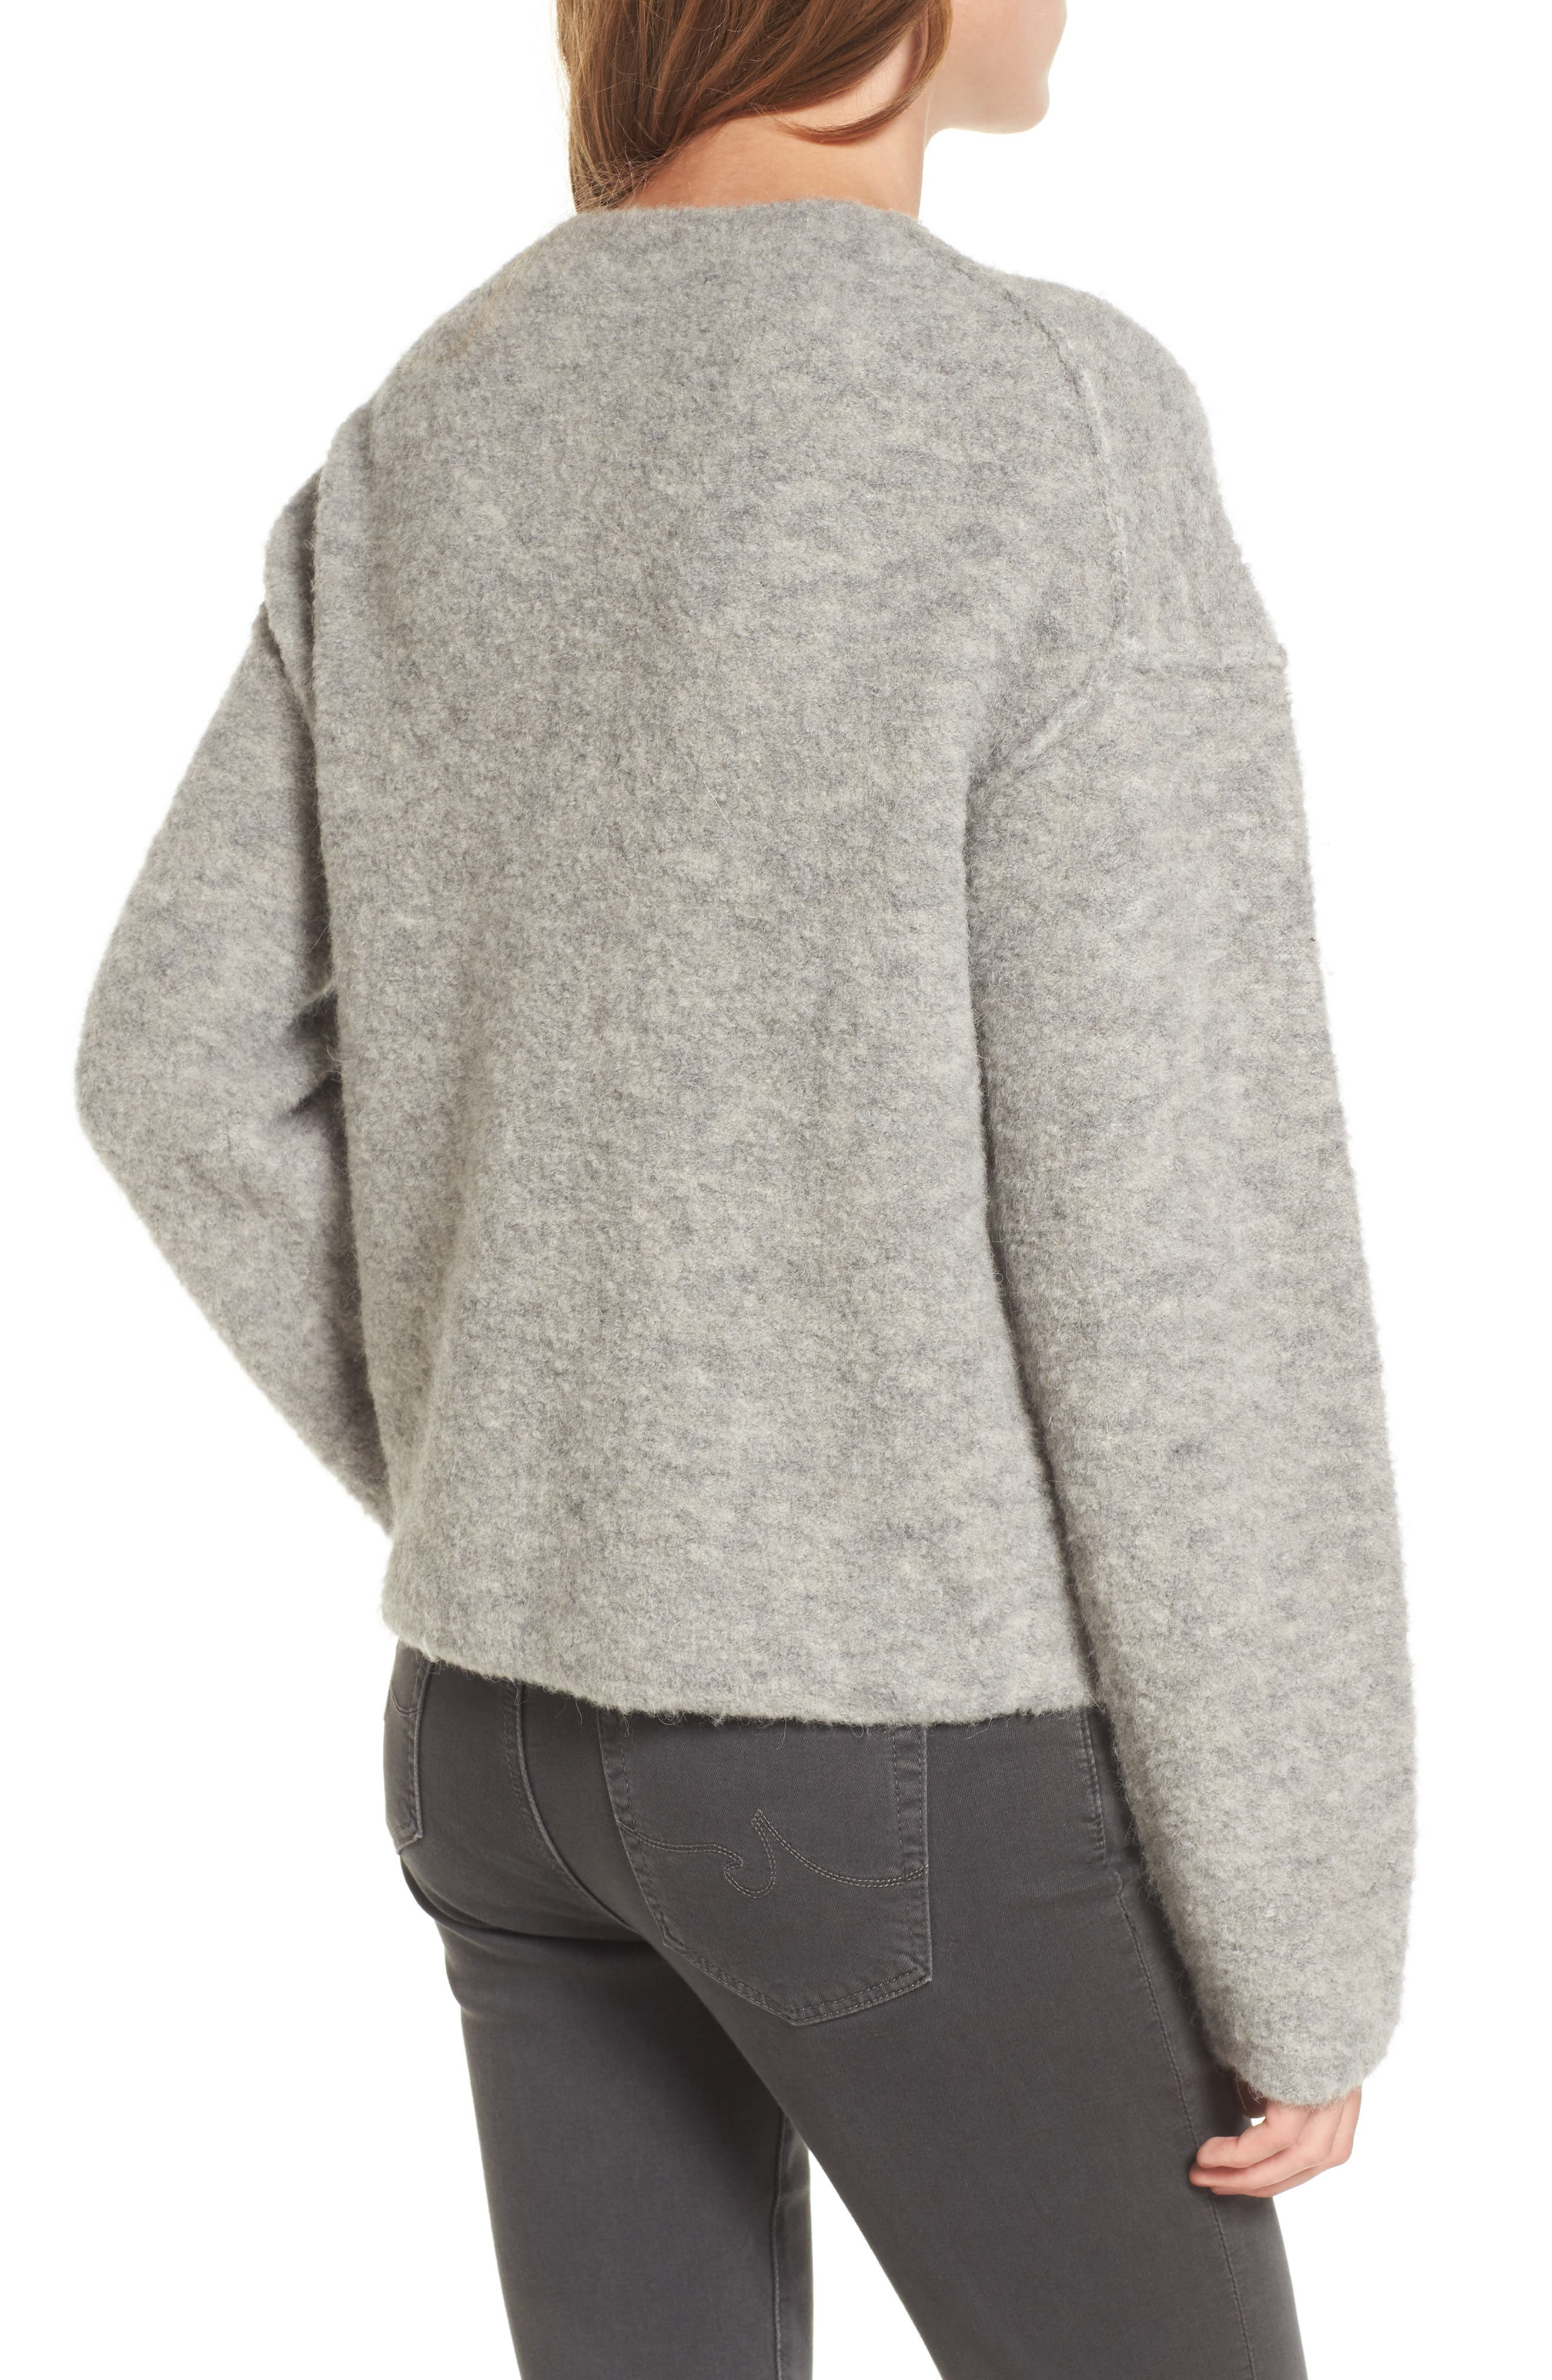 Skye Sweater,                             Alternate thumbnail 2, color,                             Heather Grey